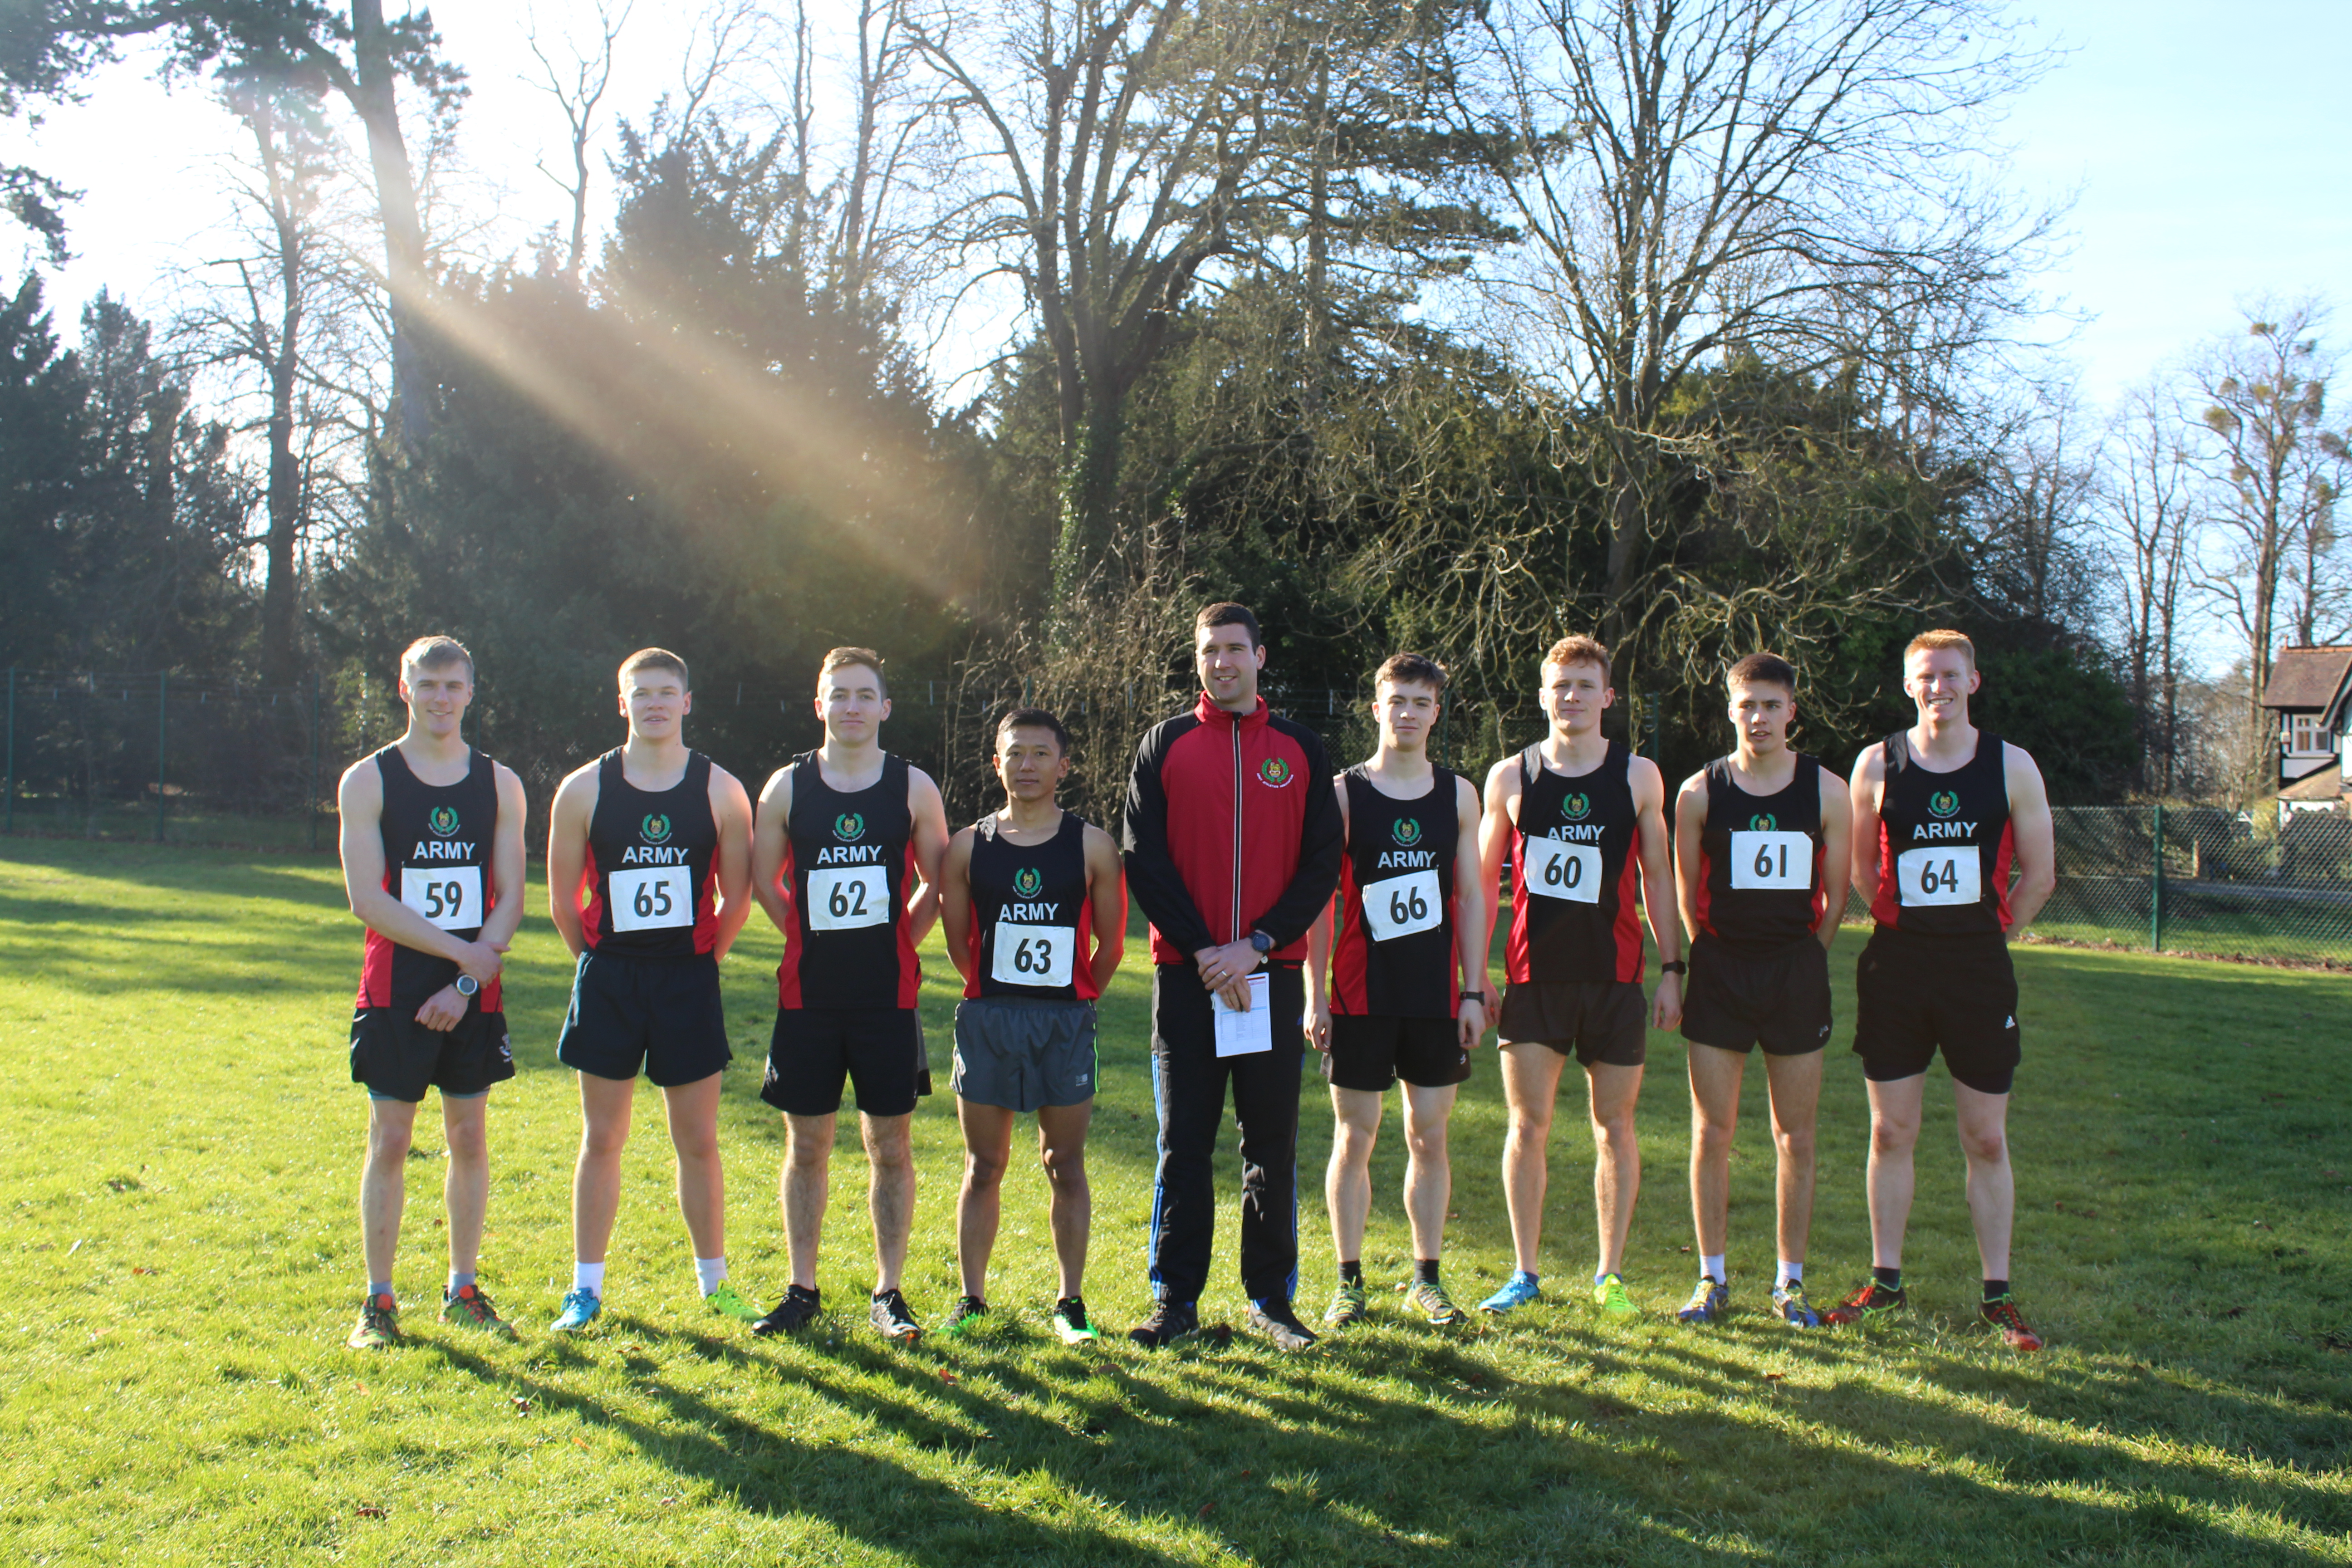 Inter-Services Cross Country Championships Results 2019